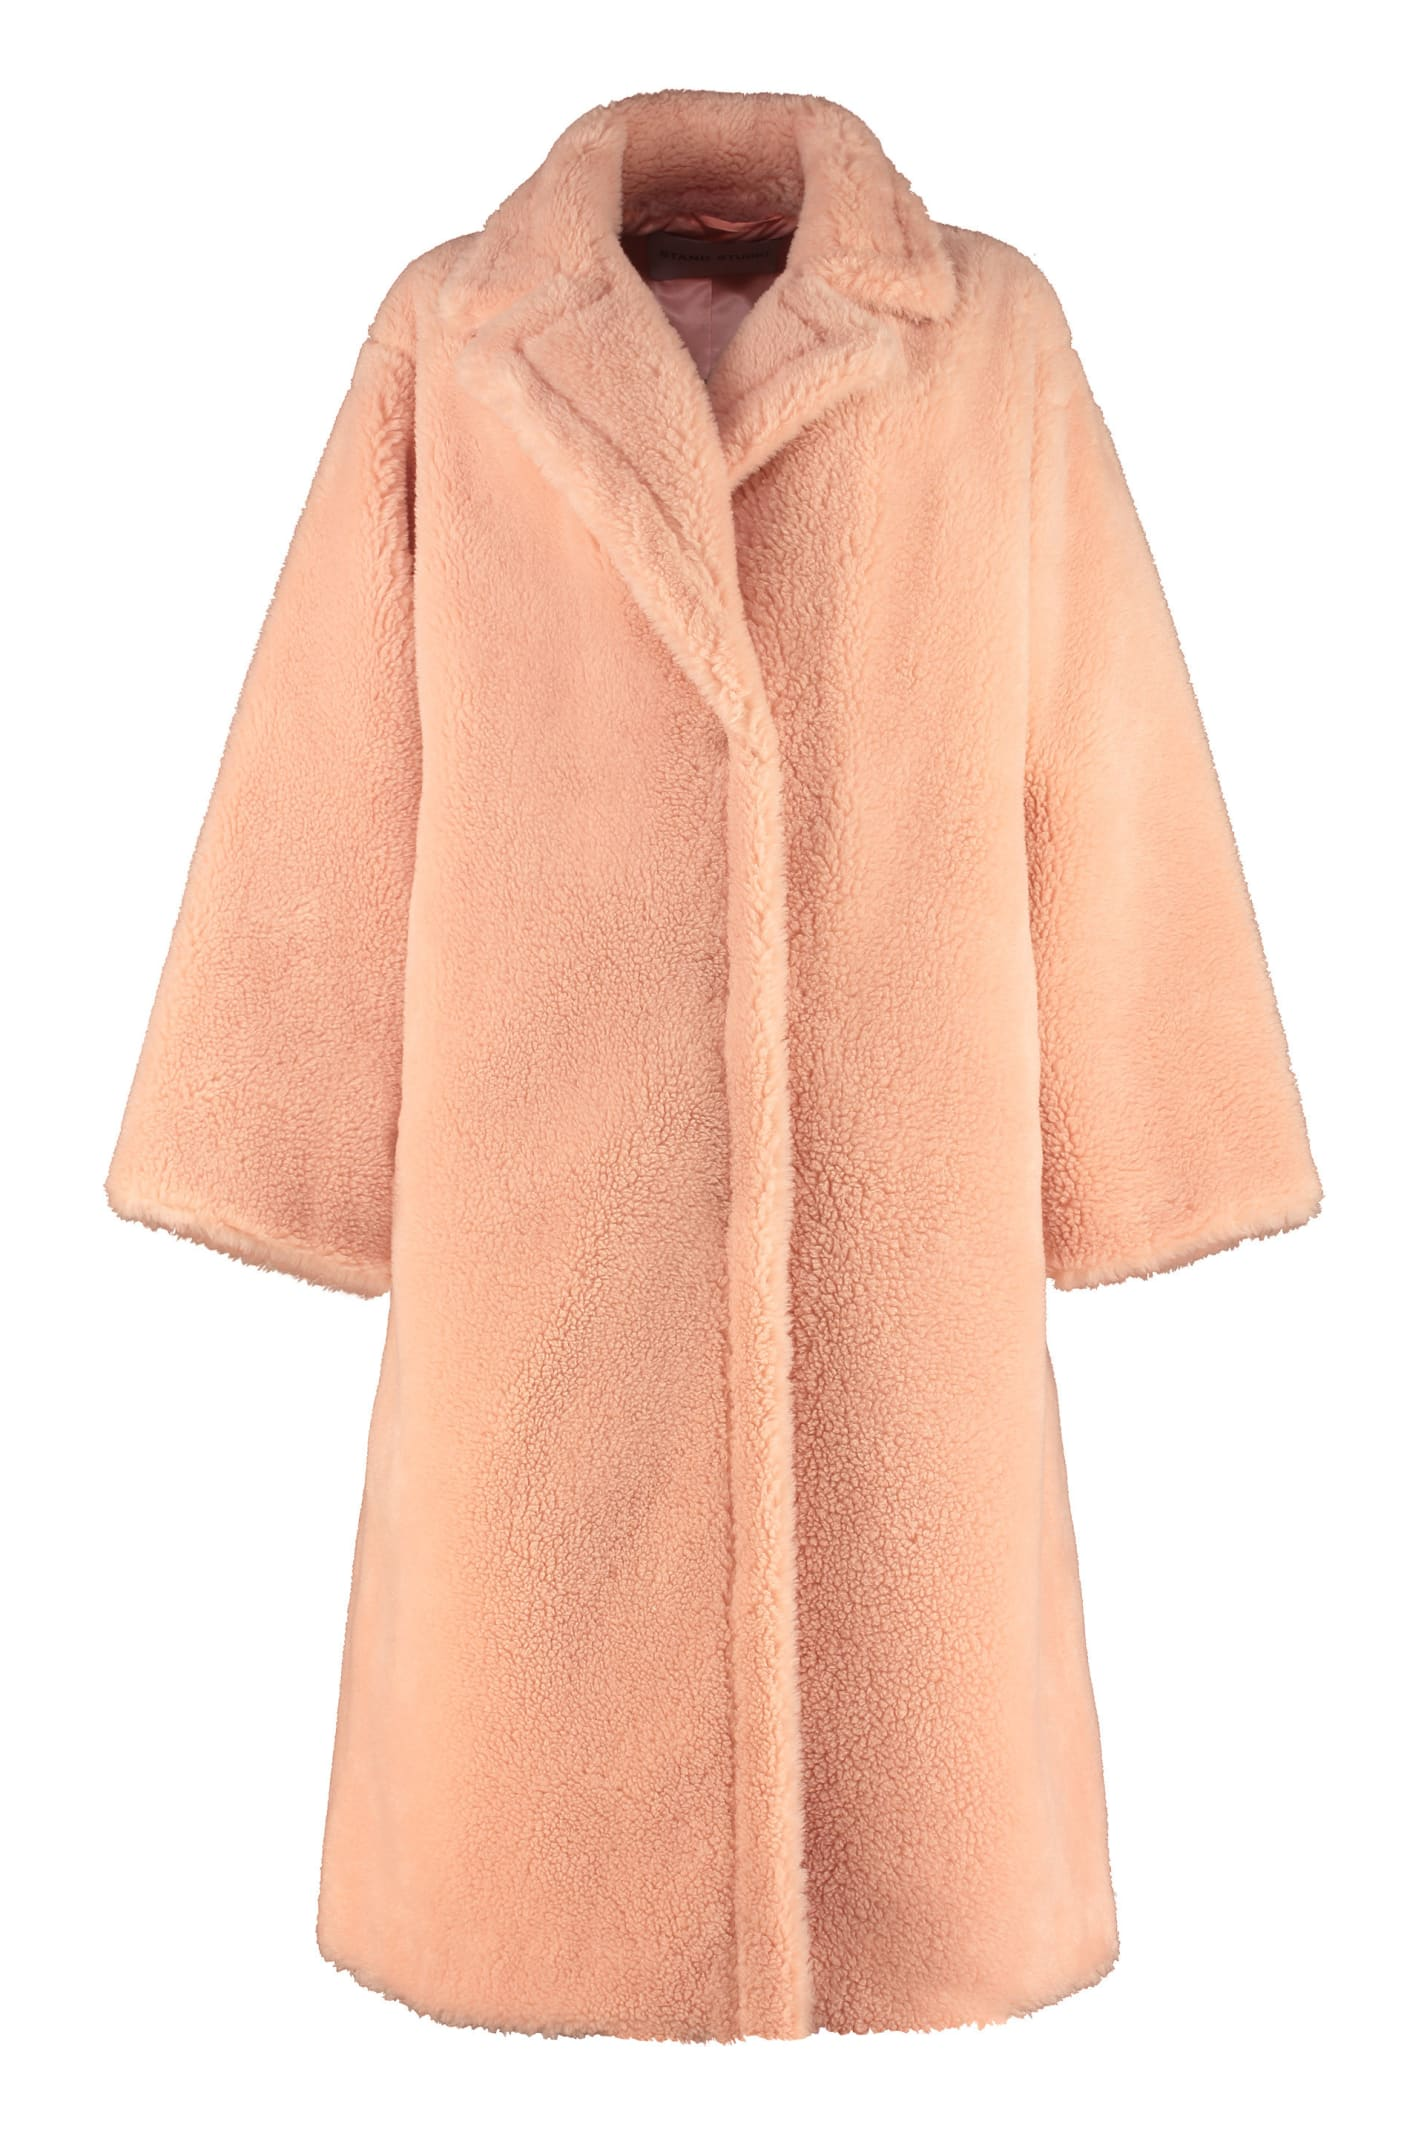 Stand Studio MARIA FAUX FUR COAT